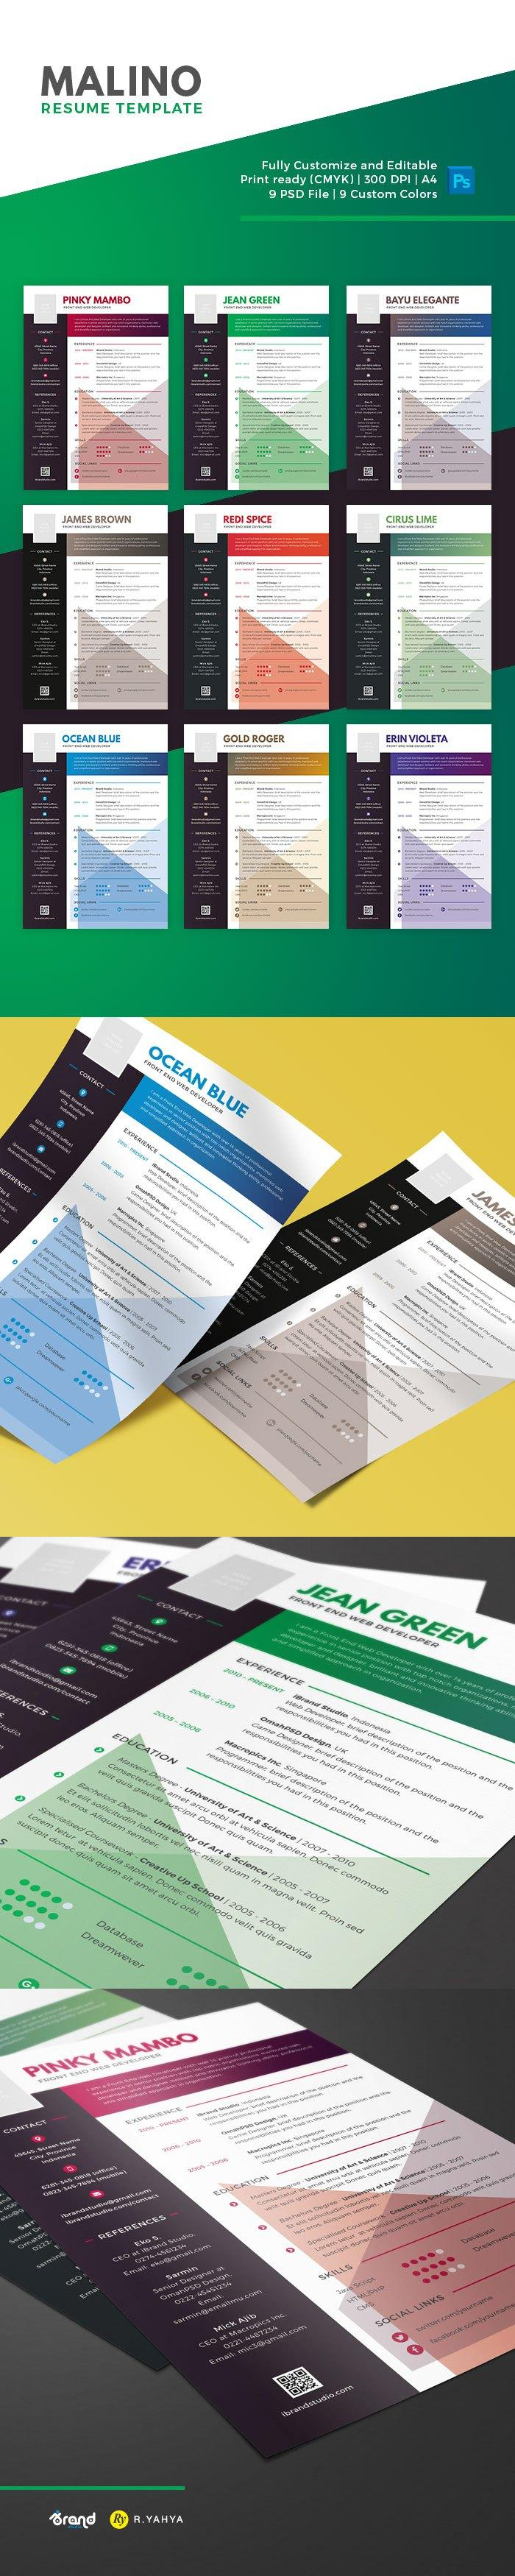 doc 621805 totally resume template totally resume totally resume templates totally resume template